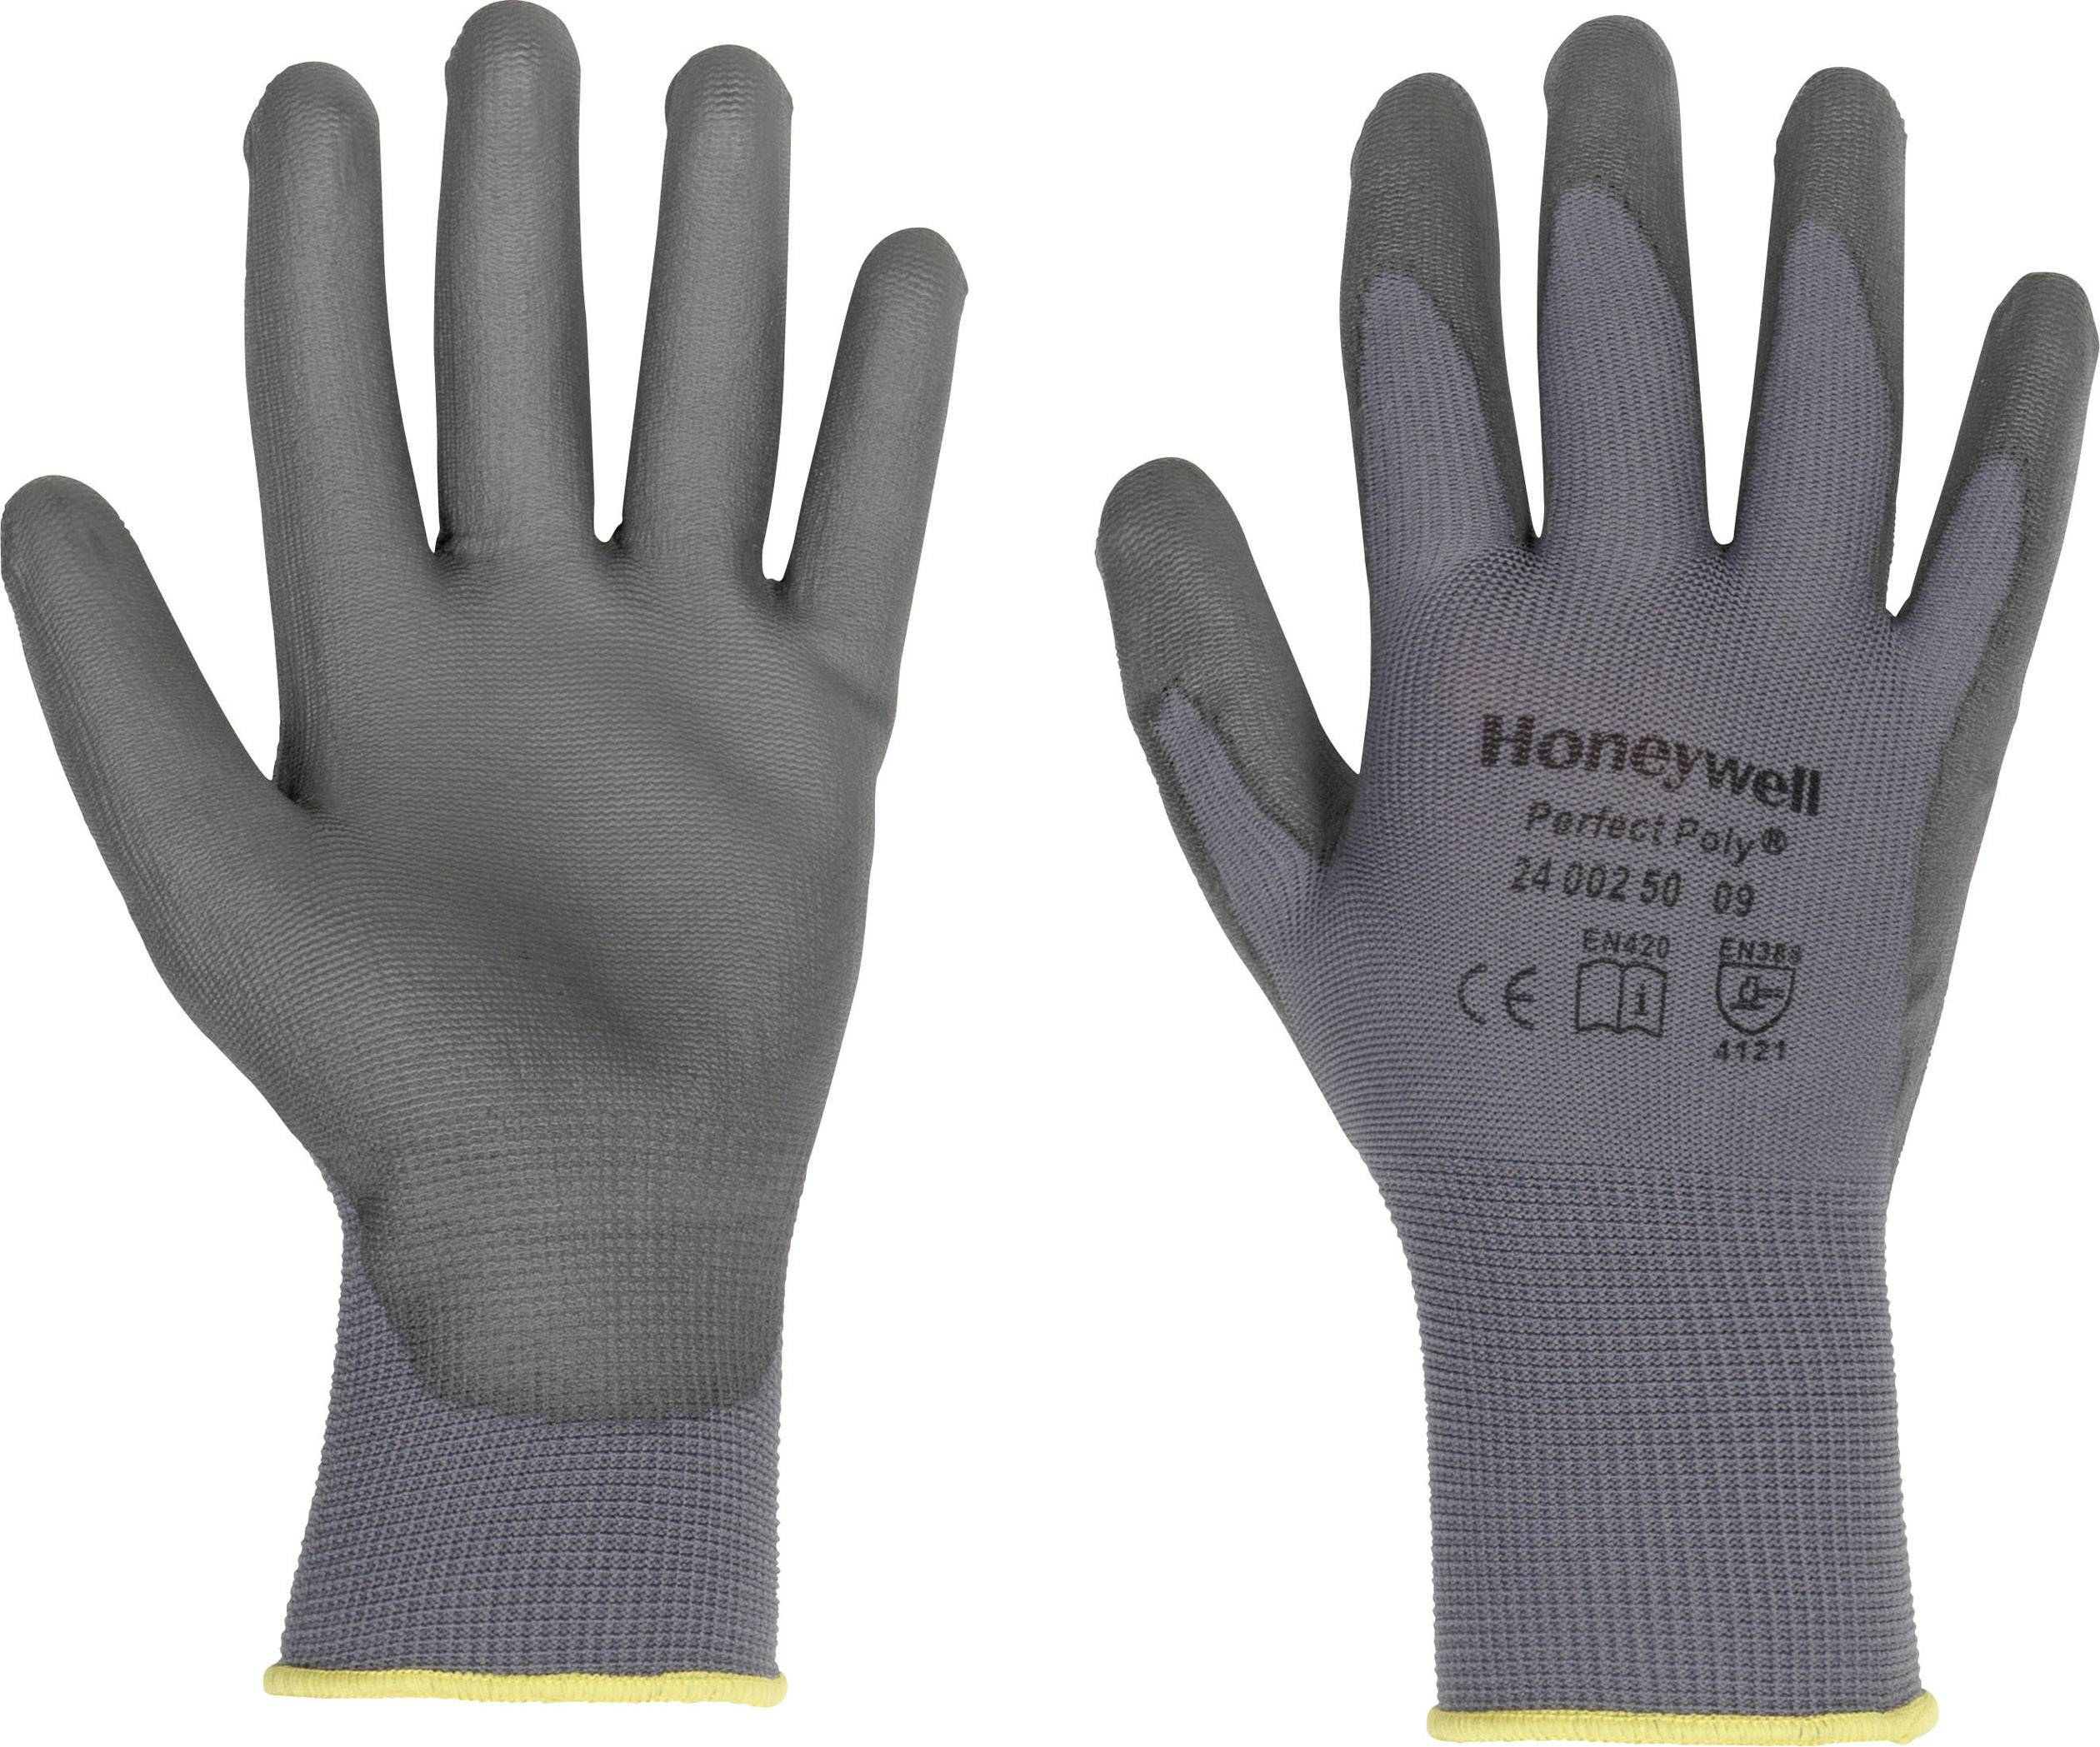 Pracovné rukavice Perfect Fit GANTS GRIS PERFECTPOLY 2400250, velikost rukavic: 8, M